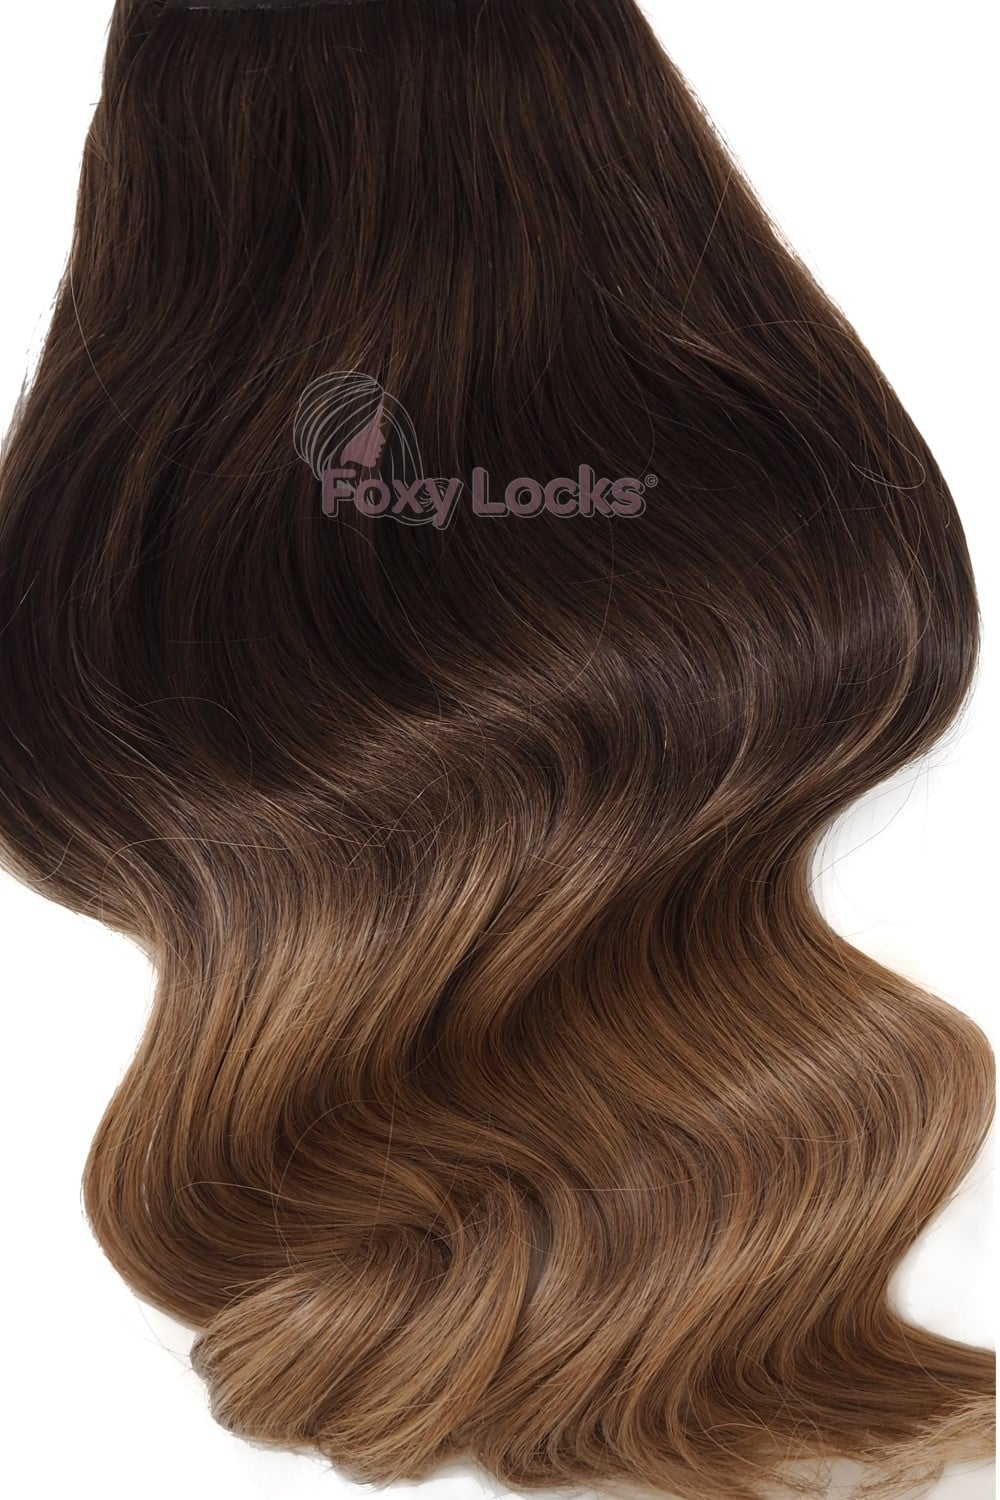 toffee ombre deluxe 20 clip in human hair extensions 165g